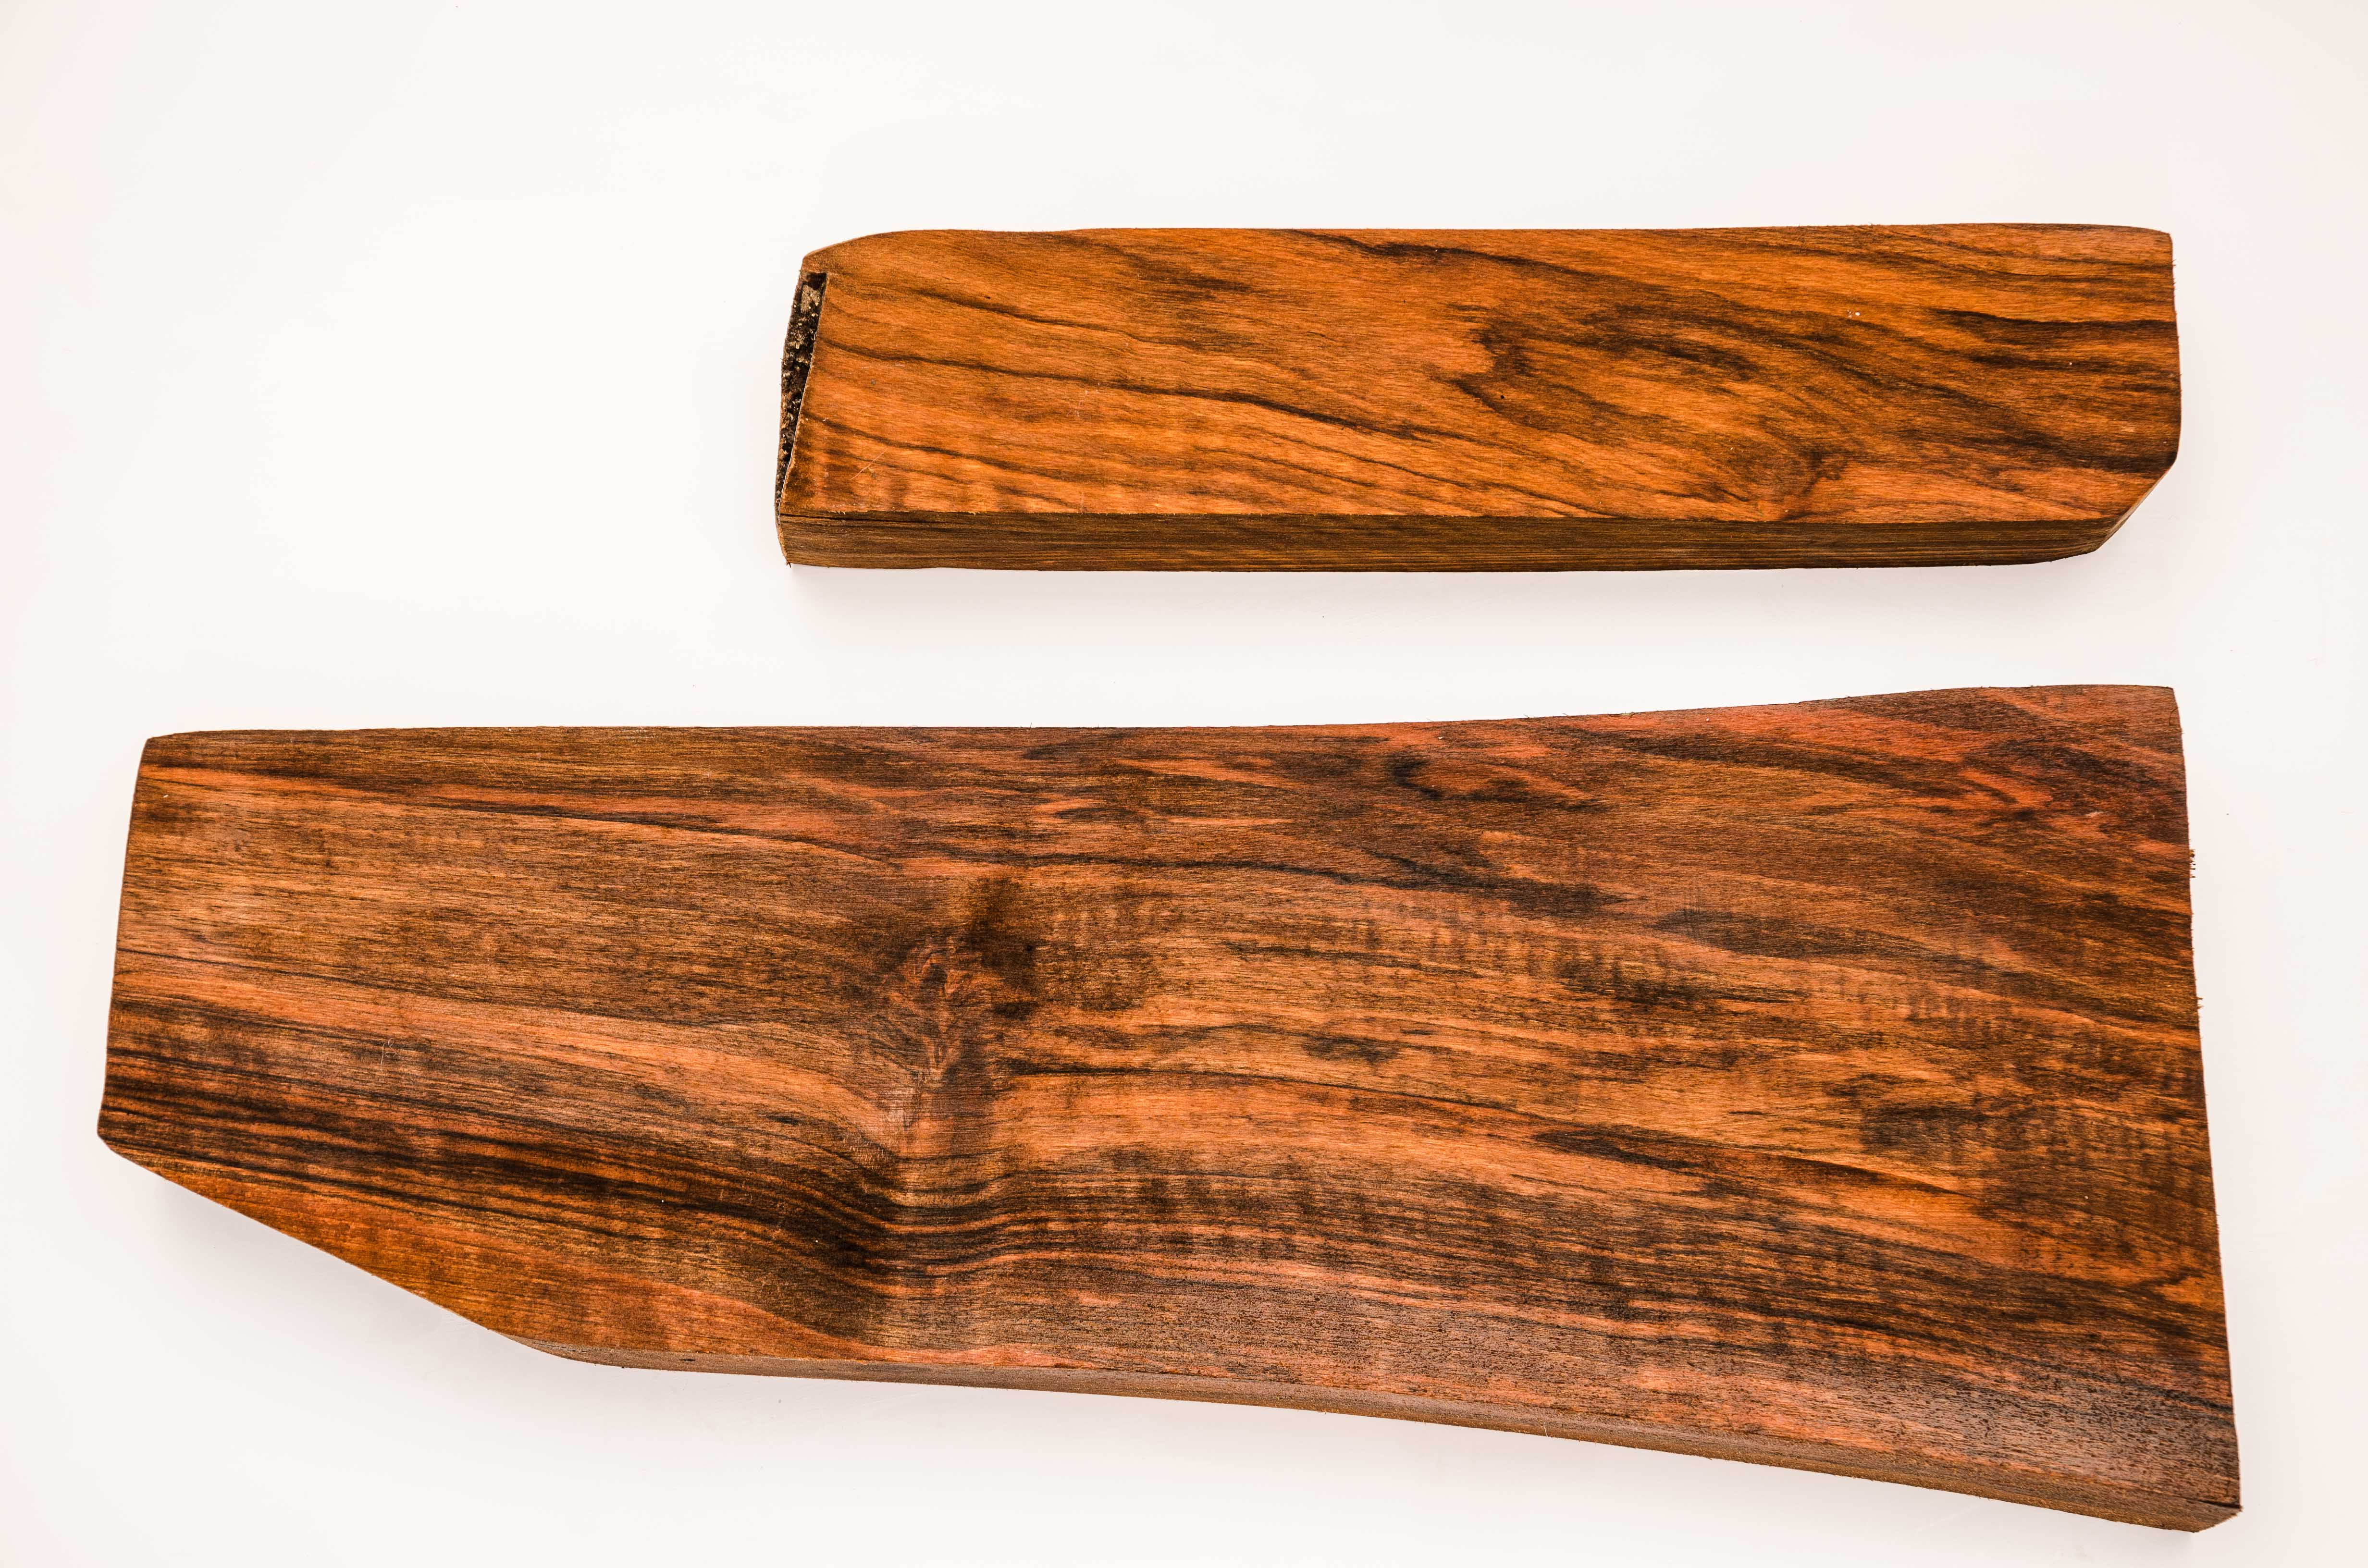 walnut_stock_blanks_for_guns_and_rifles-0532